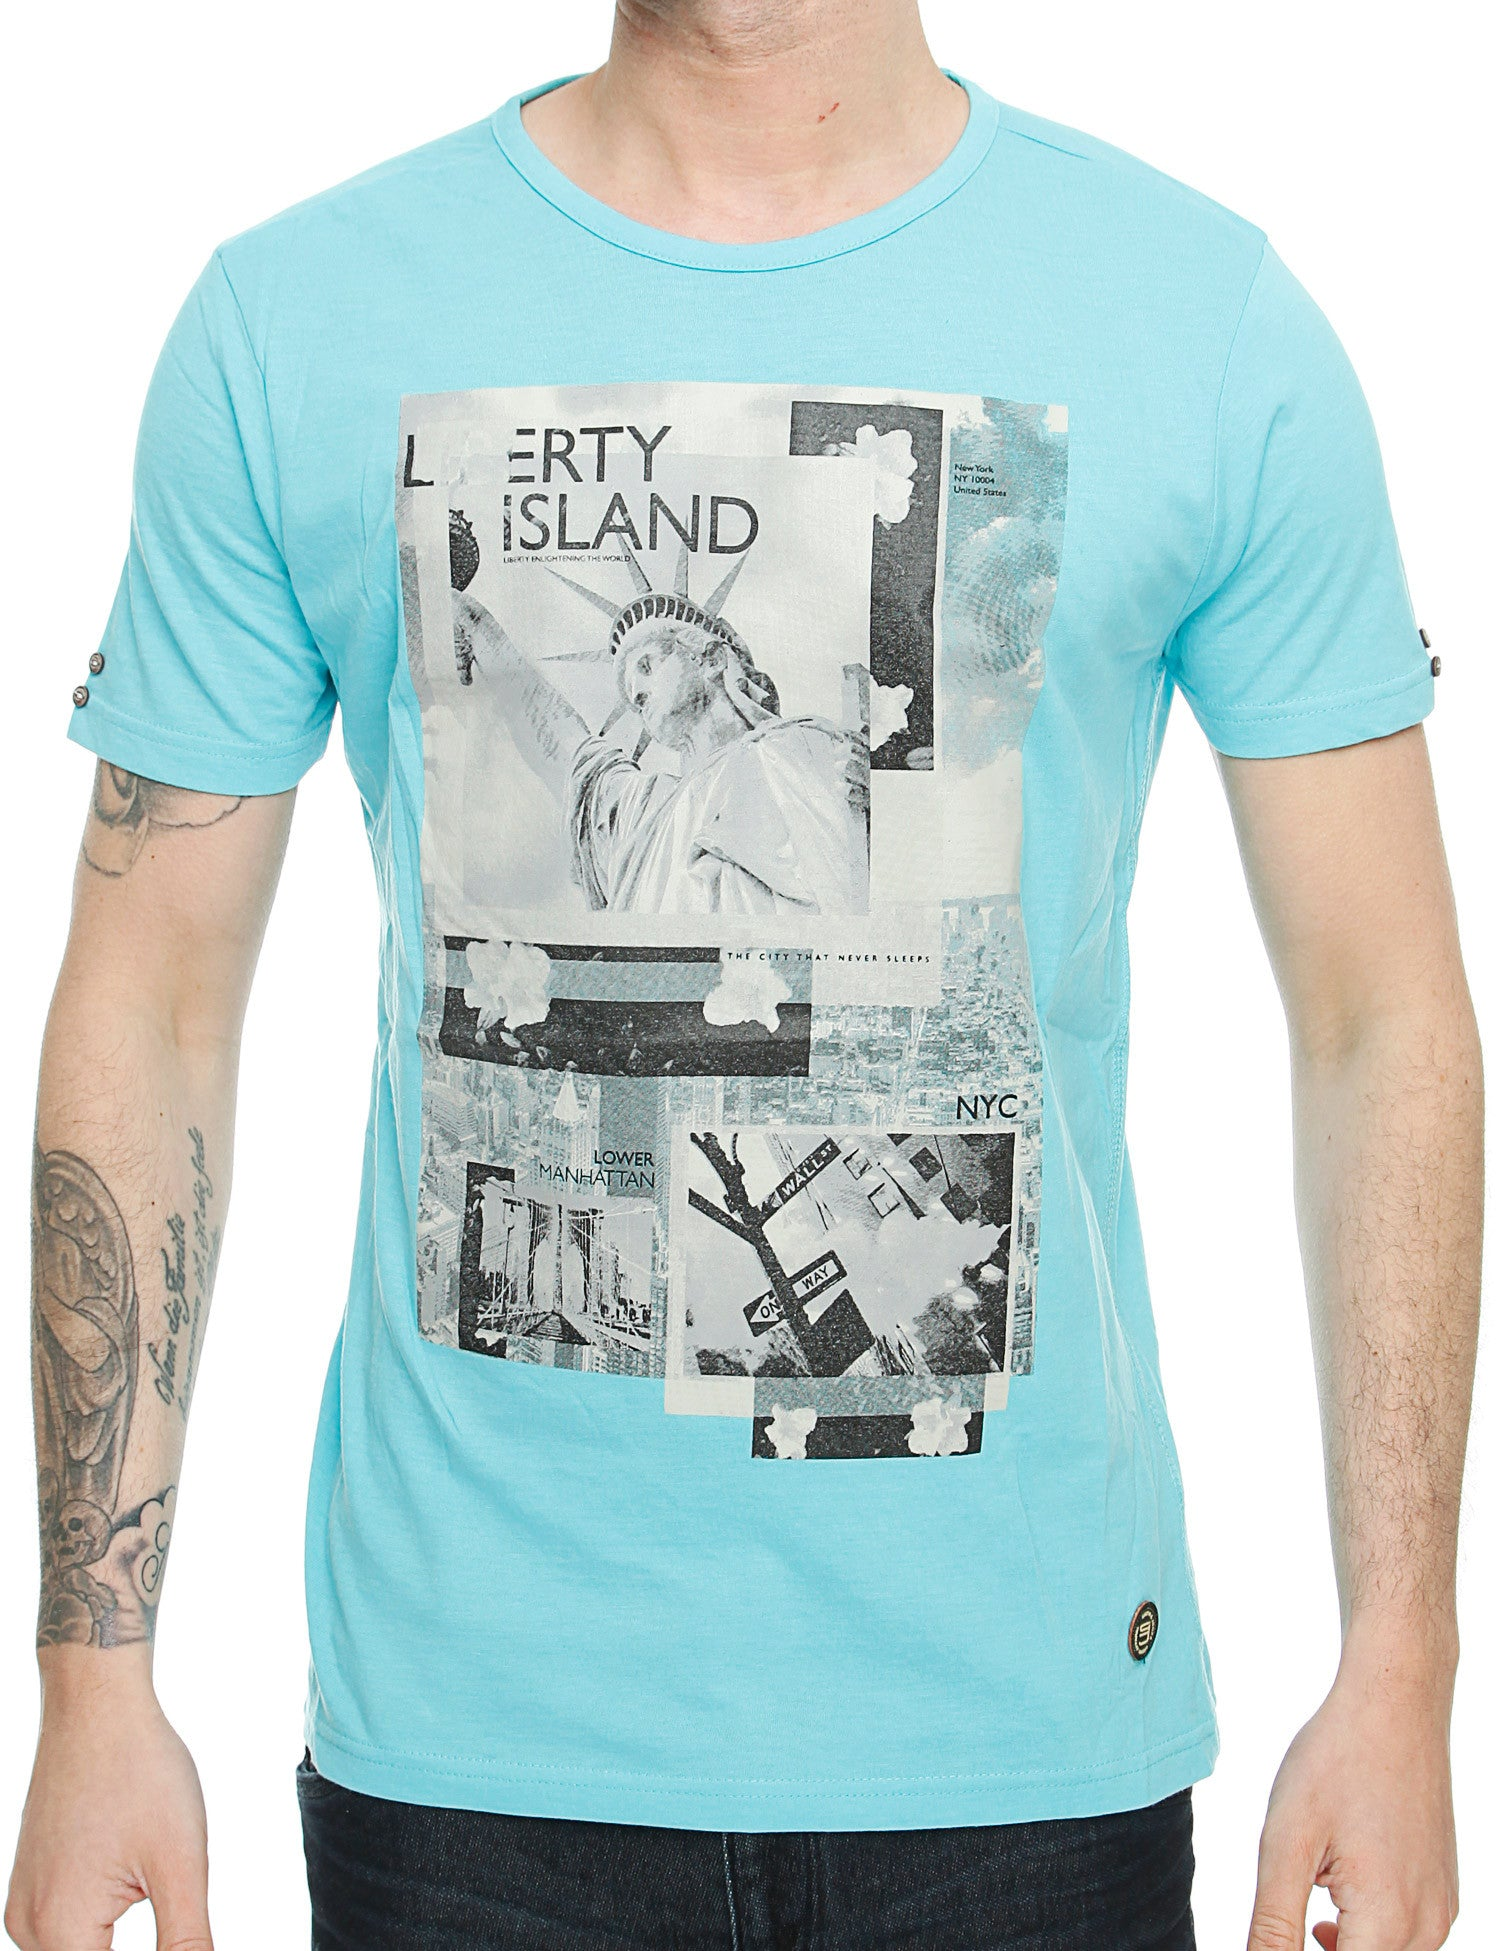 Smith  Jones Chertsay T-Shirt SJ2A108464 Capi Marl Turquoise